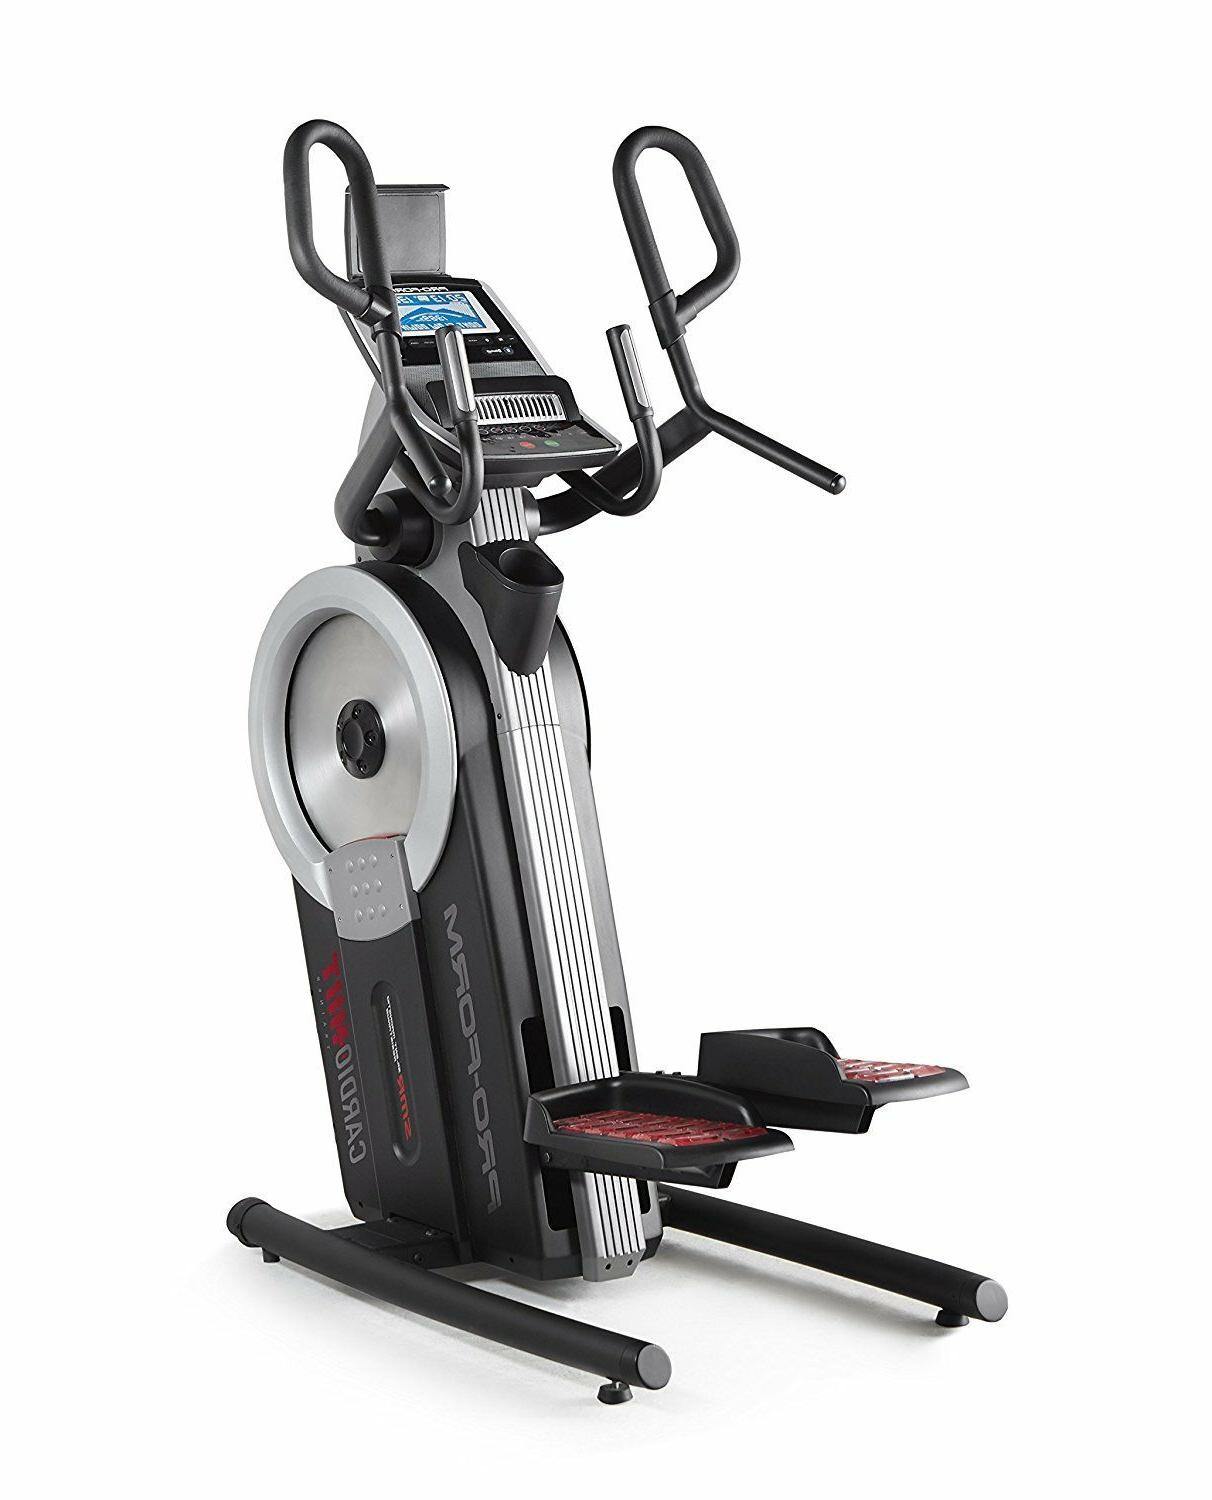 ProForm Trainer,Exercise,PFEL09915 in-house Delivery,New